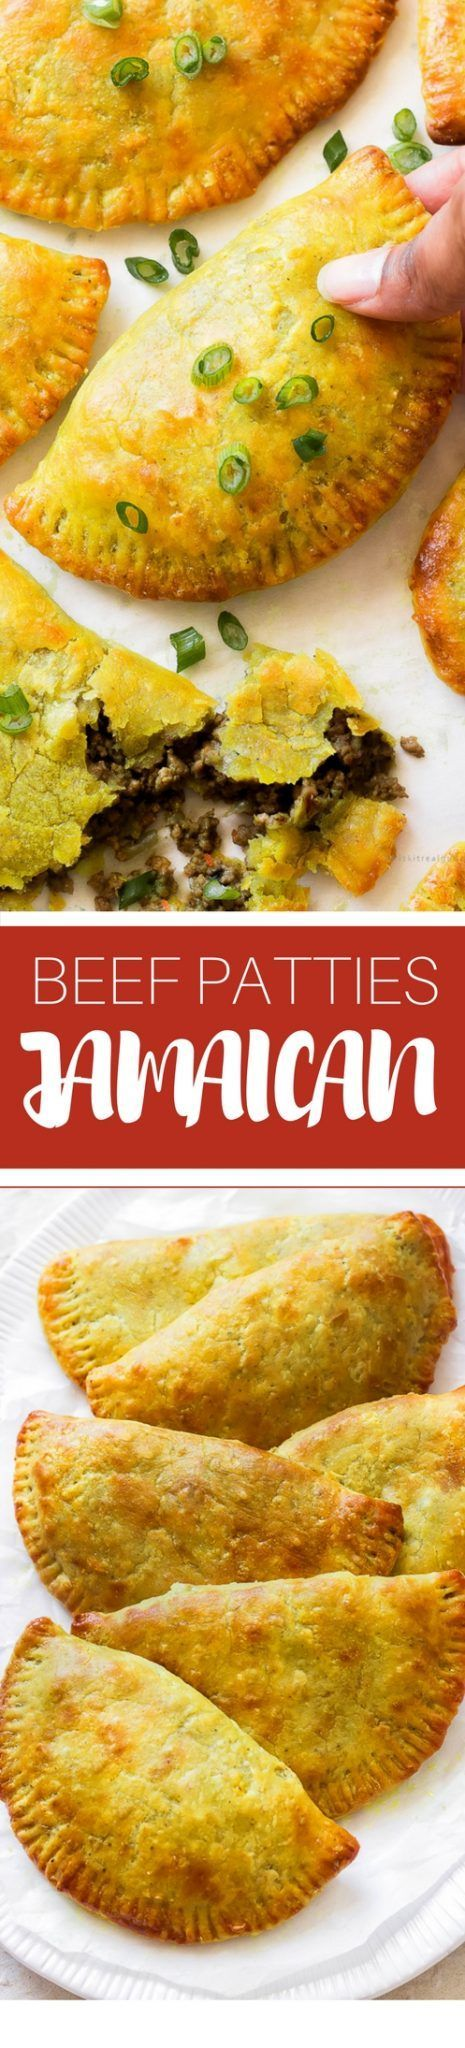 Thin, flaky and buttery yellow crust with a mighty seasoned meat filling. Make a big batch because these Jamaican beef patties will disappear fast!